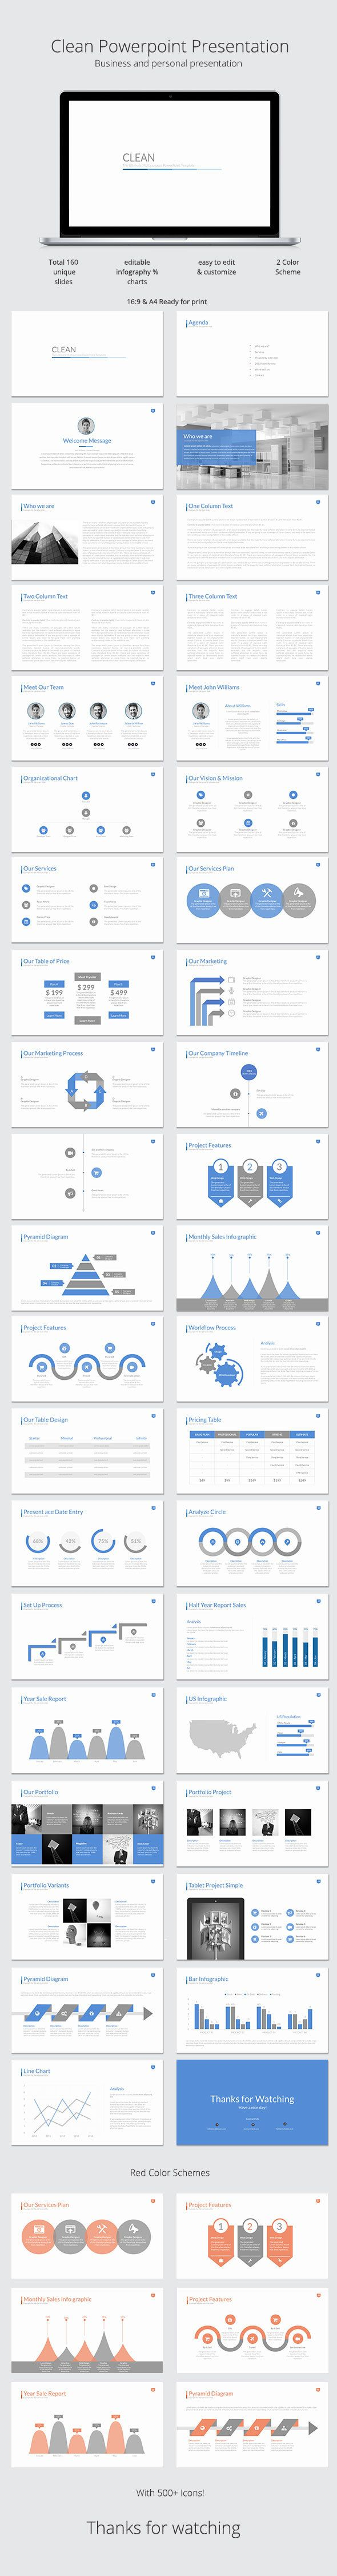 Coolmathgamesus  Pleasant  Ideas About Powerpoint Presentations On Pinterest With Likable Clean Powerpoint Template With Adorable What Is The Powerpoint Also Earth Science Powerpoints In Addition Telling Time Powerpoint And Free Clipart For Powerpoint Presentations As Well As Test Taking Powerpoint Additionally Quotation Marks Powerpoint From Pinterestcom With Coolmathgamesus  Likable  Ideas About Powerpoint Presentations On Pinterest With Adorable Clean Powerpoint Template And Pleasant What Is The Powerpoint Also Earth Science Powerpoints In Addition Telling Time Powerpoint From Pinterestcom